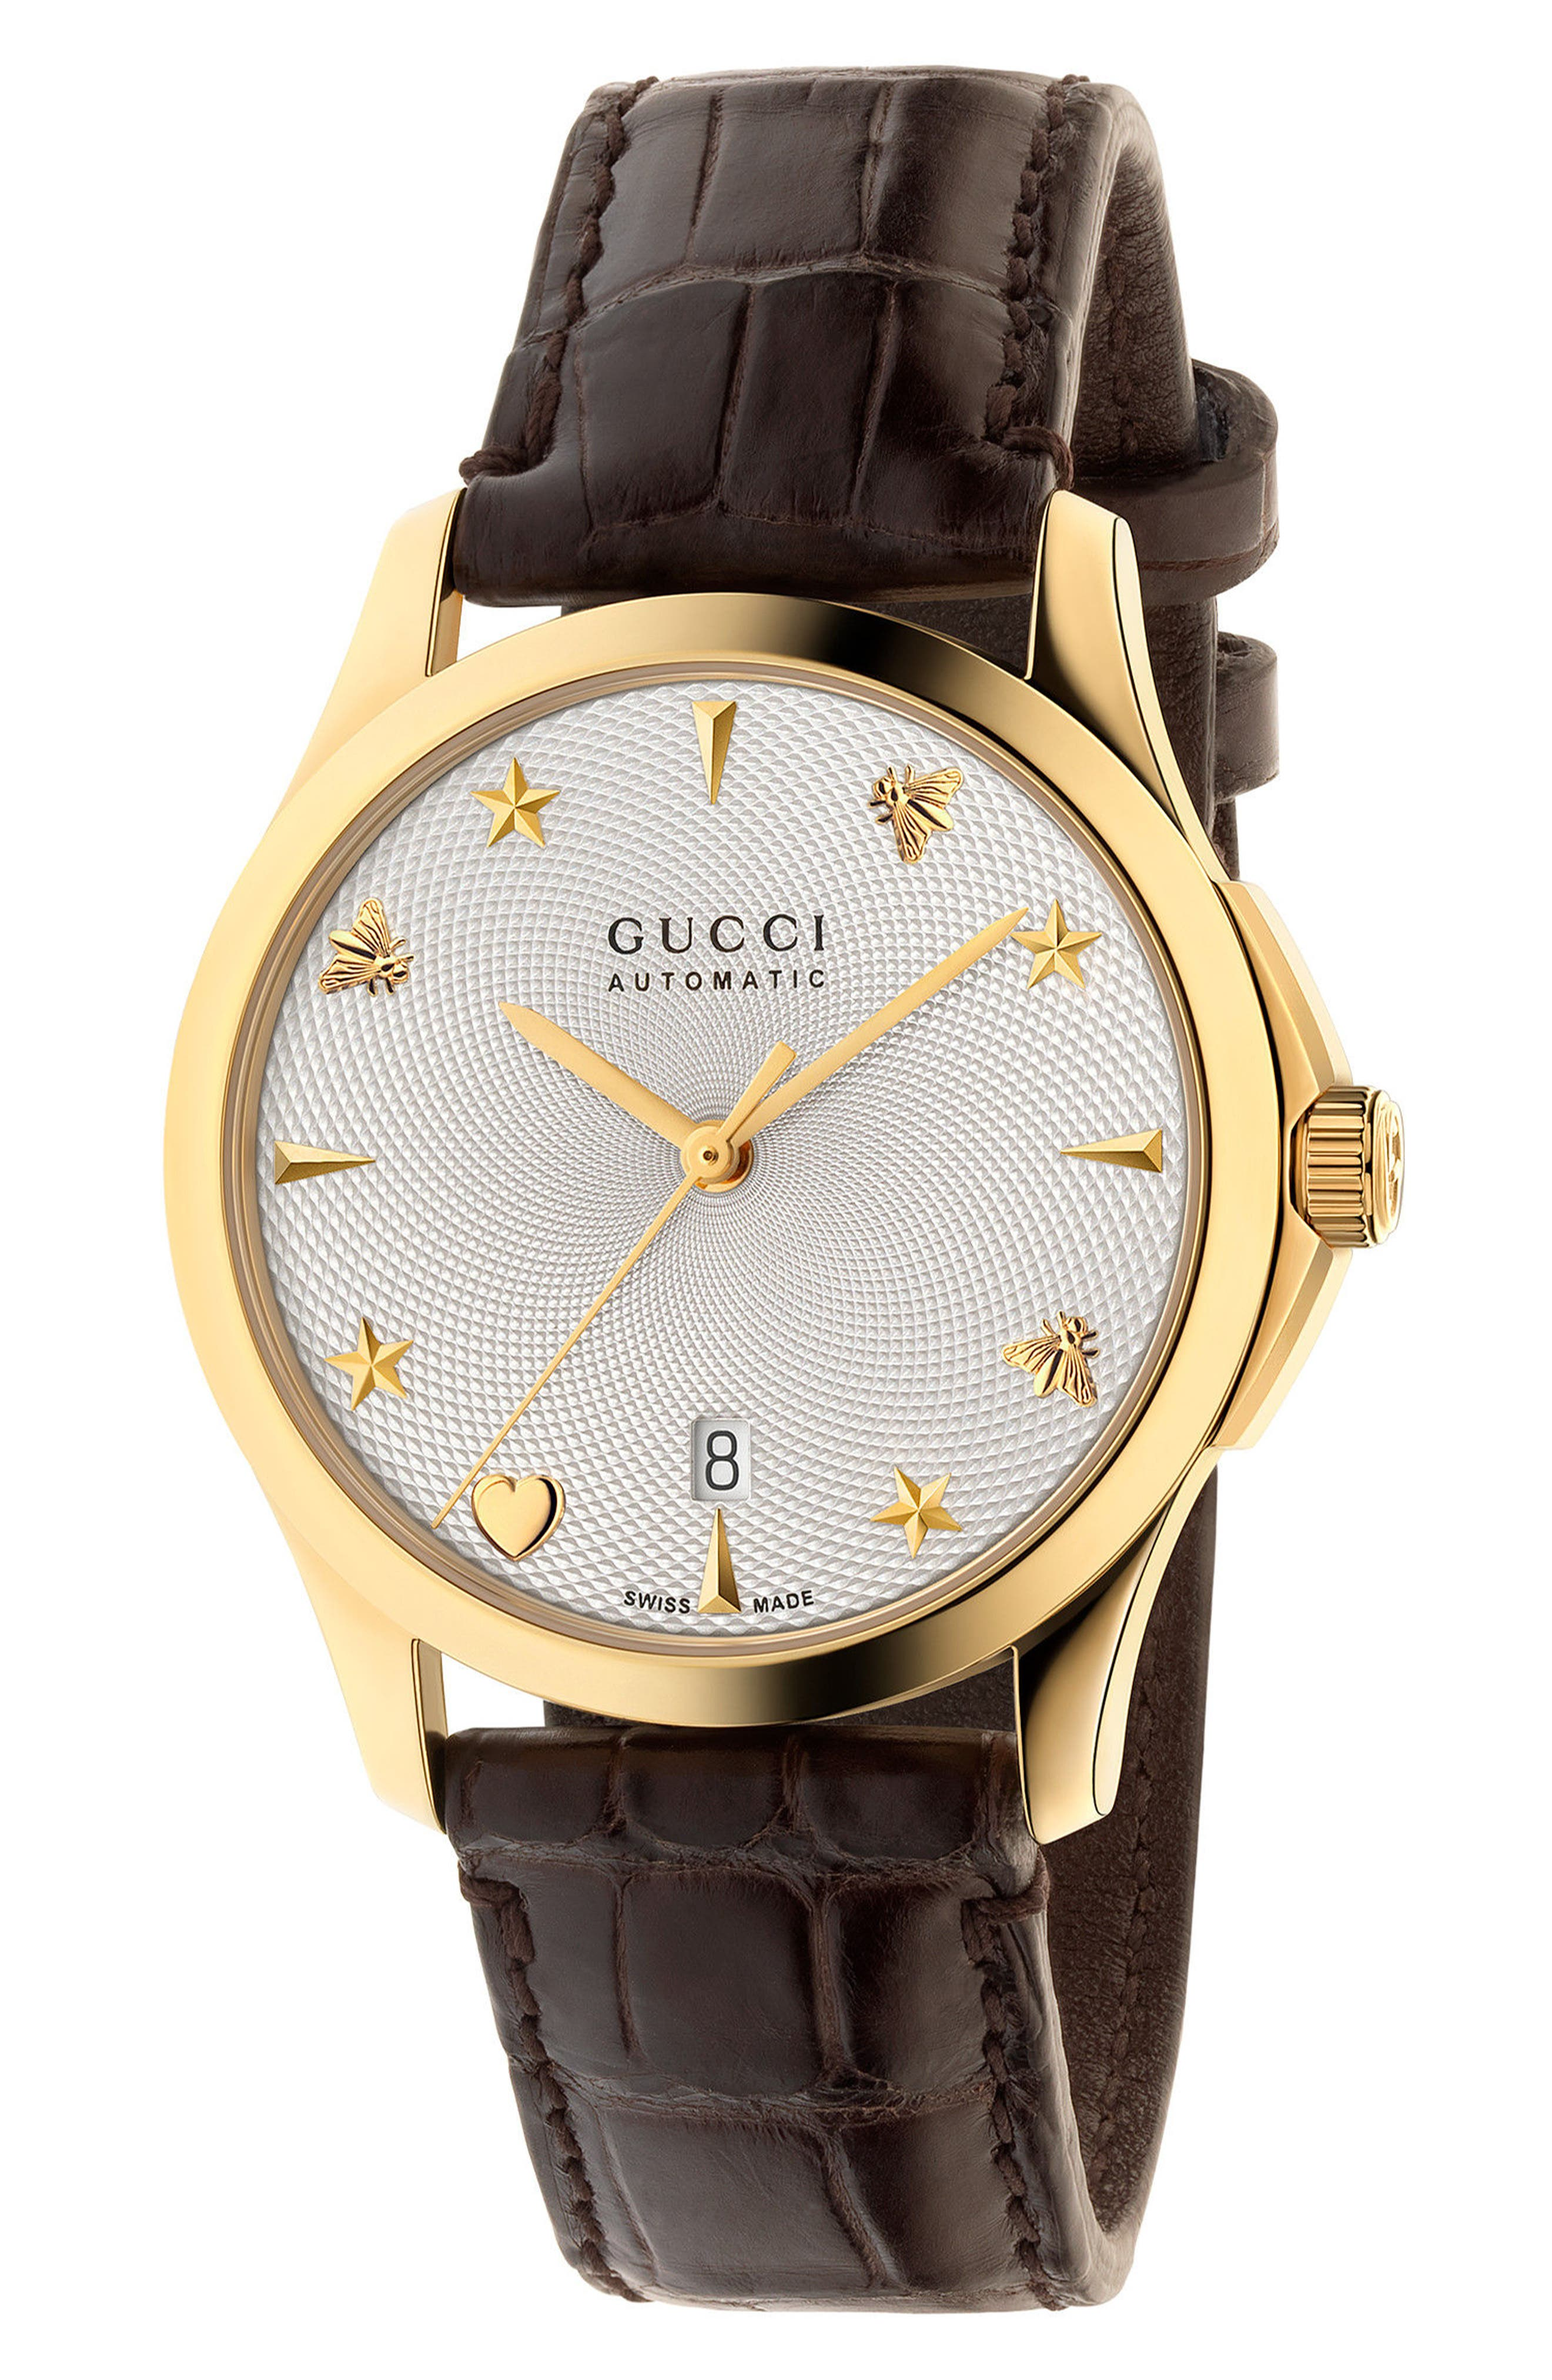 Gucci G-Timeless Automatic Leather Strap Watch, 38mm